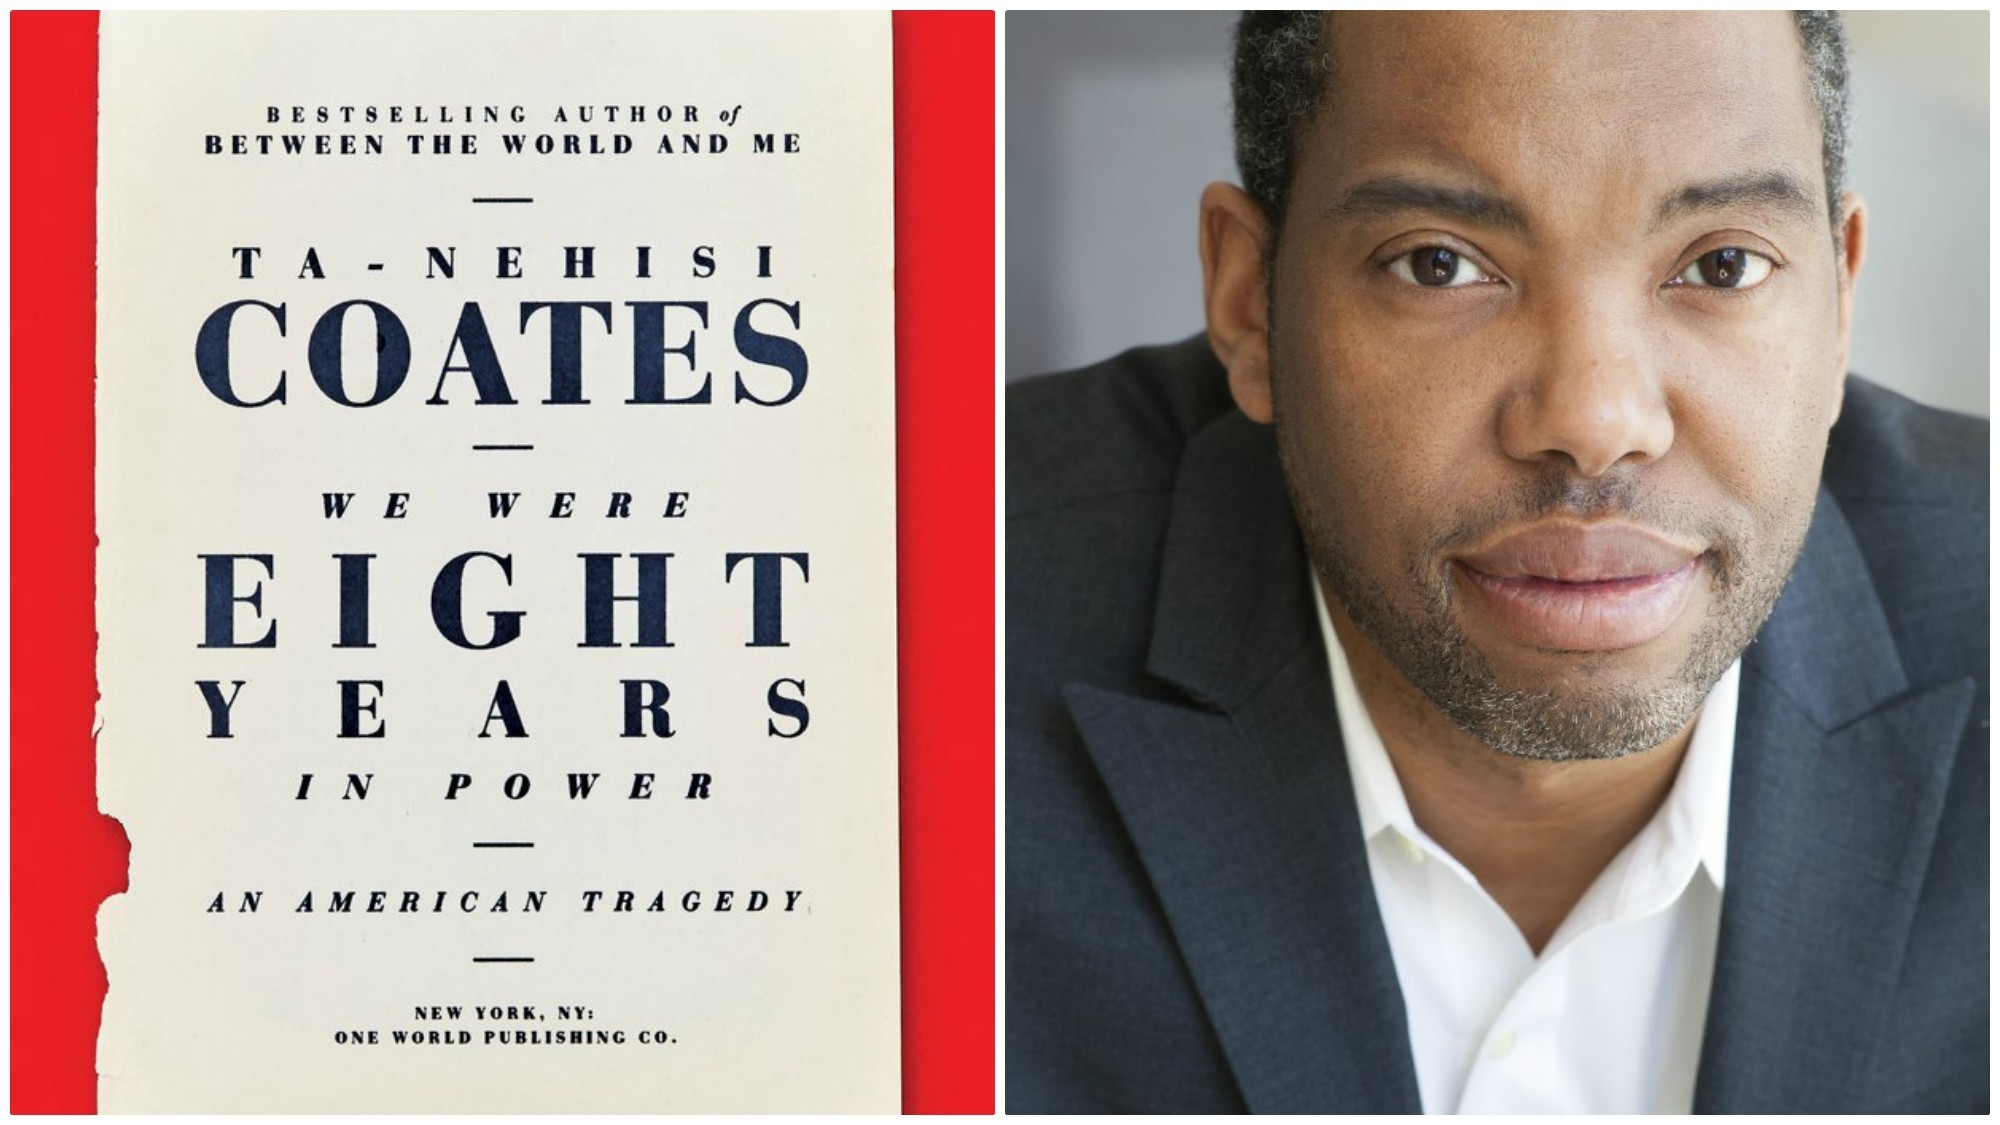 """Book jacket for Ta-Nehisi Coates' new book """"We Were Eight Years in Power"""" and author  Ta-Nahisi Coates."""